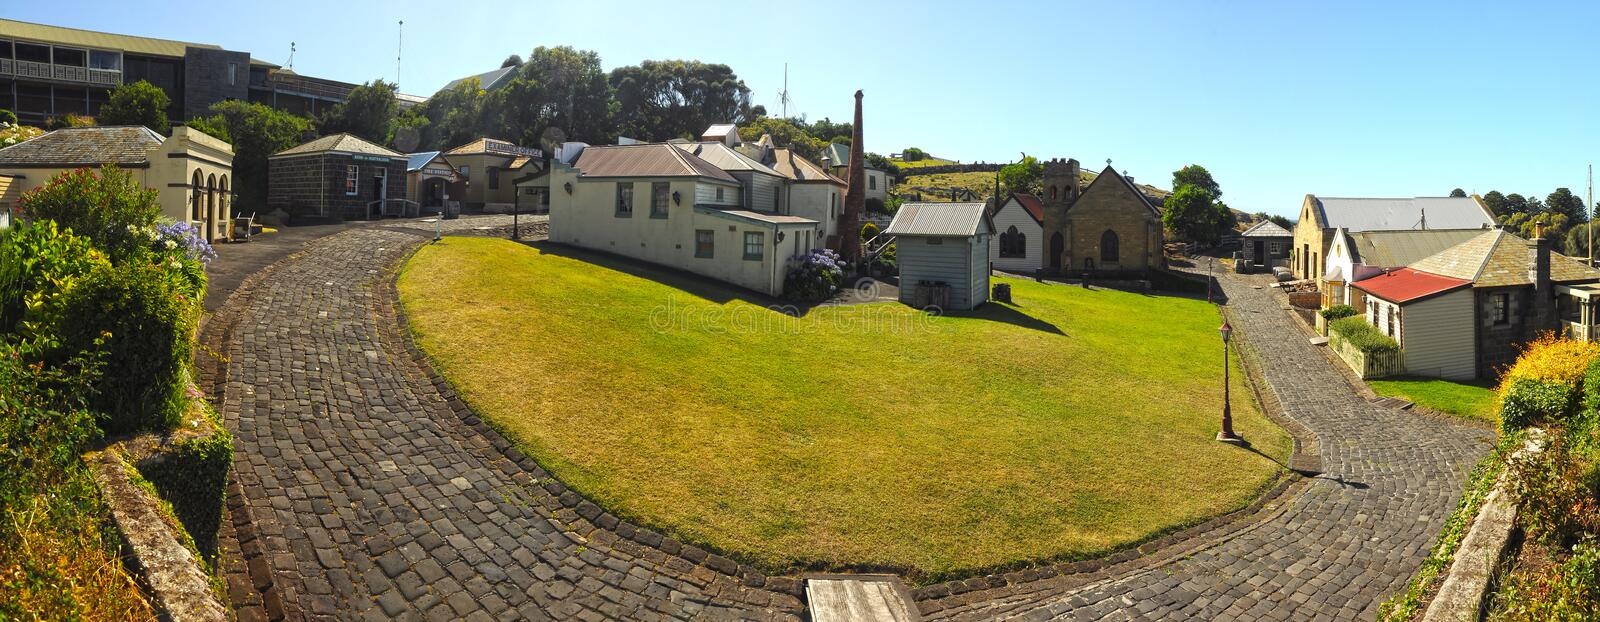 Flagstaff Hill Maritime Museum royalty free stock image